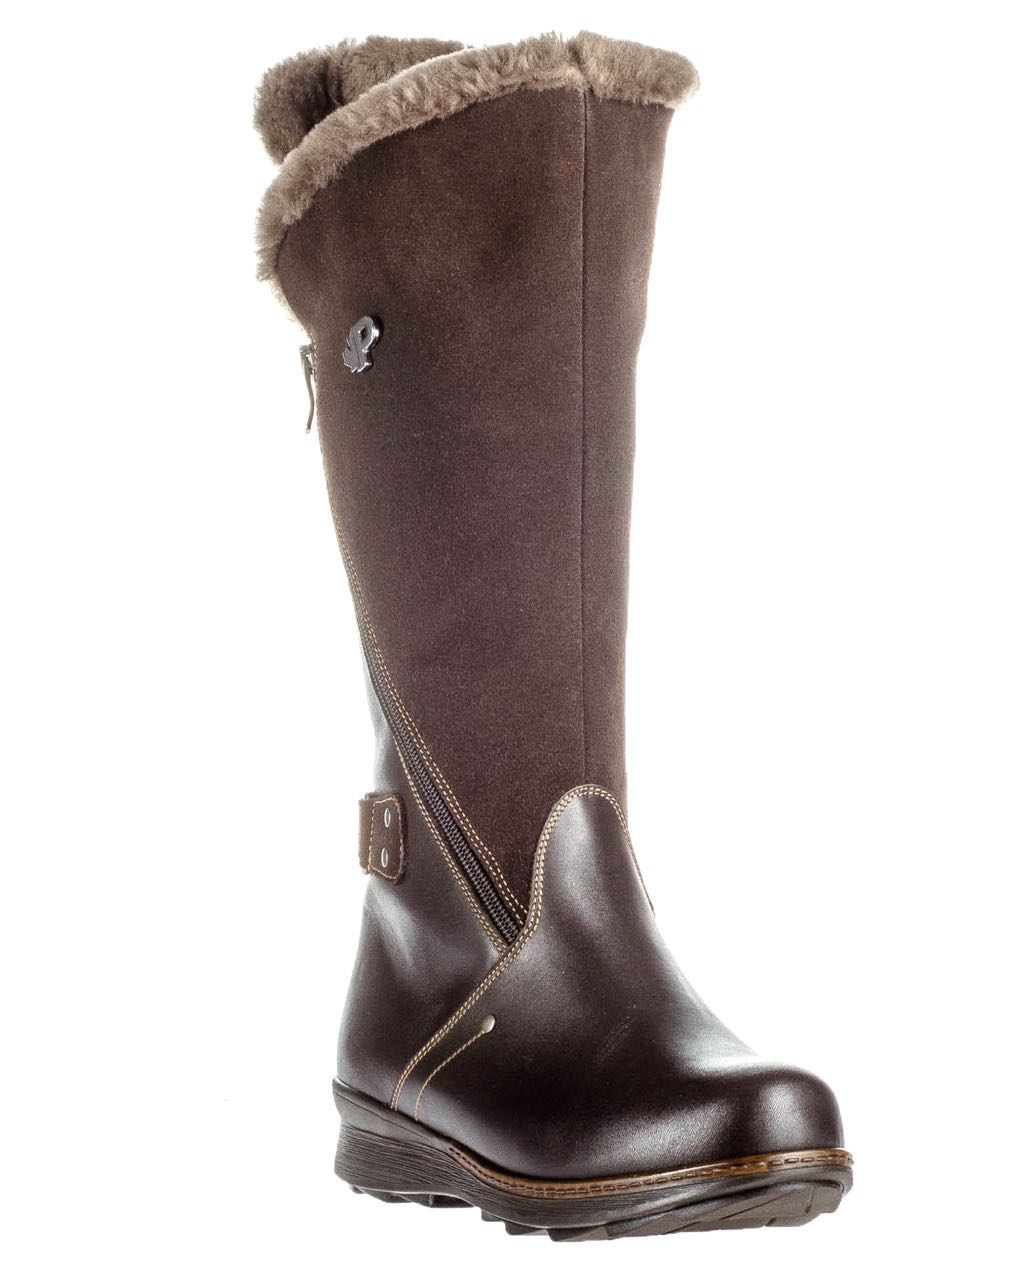 Pajar Winter Leather Boots London Brown Heritage